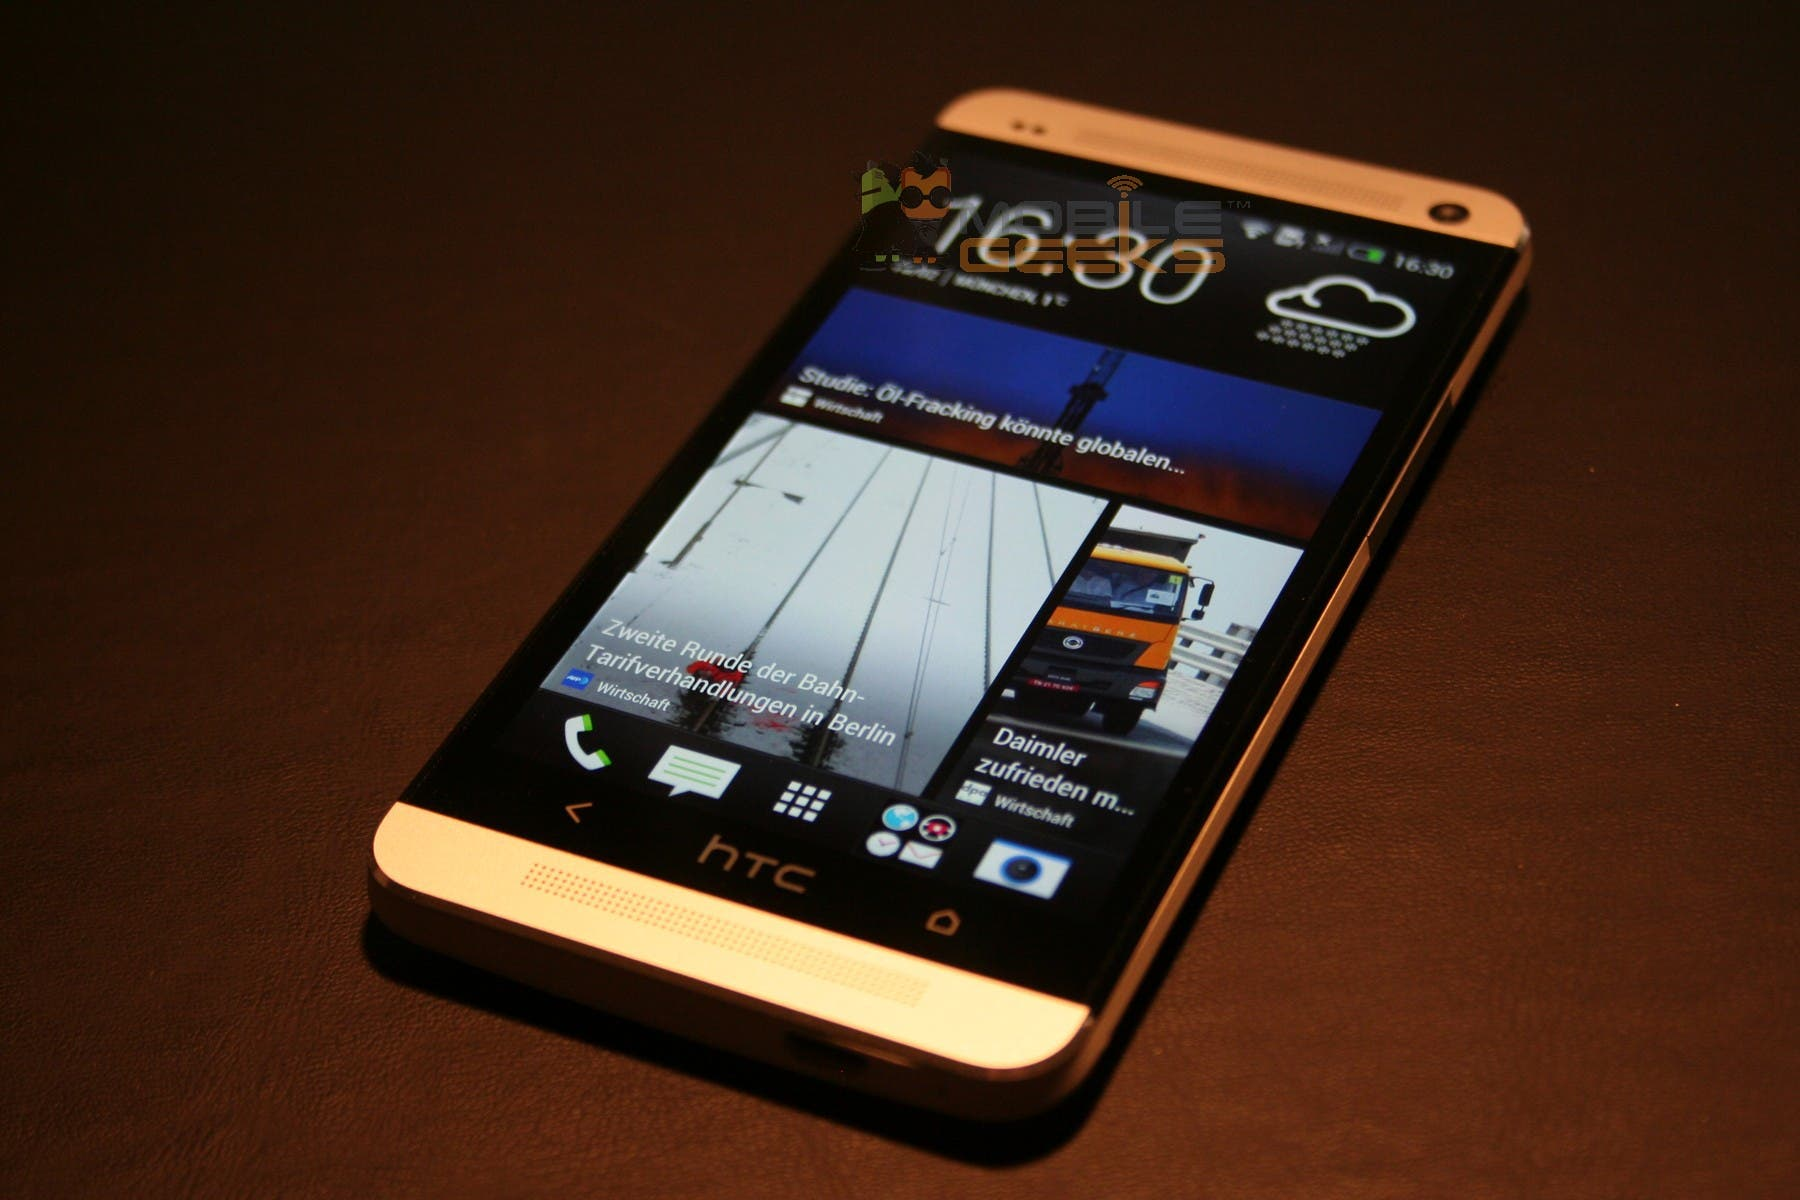 htc one m7 hands on und alle daten video. Black Bedroom Furniture Sets. Home Design Ideas